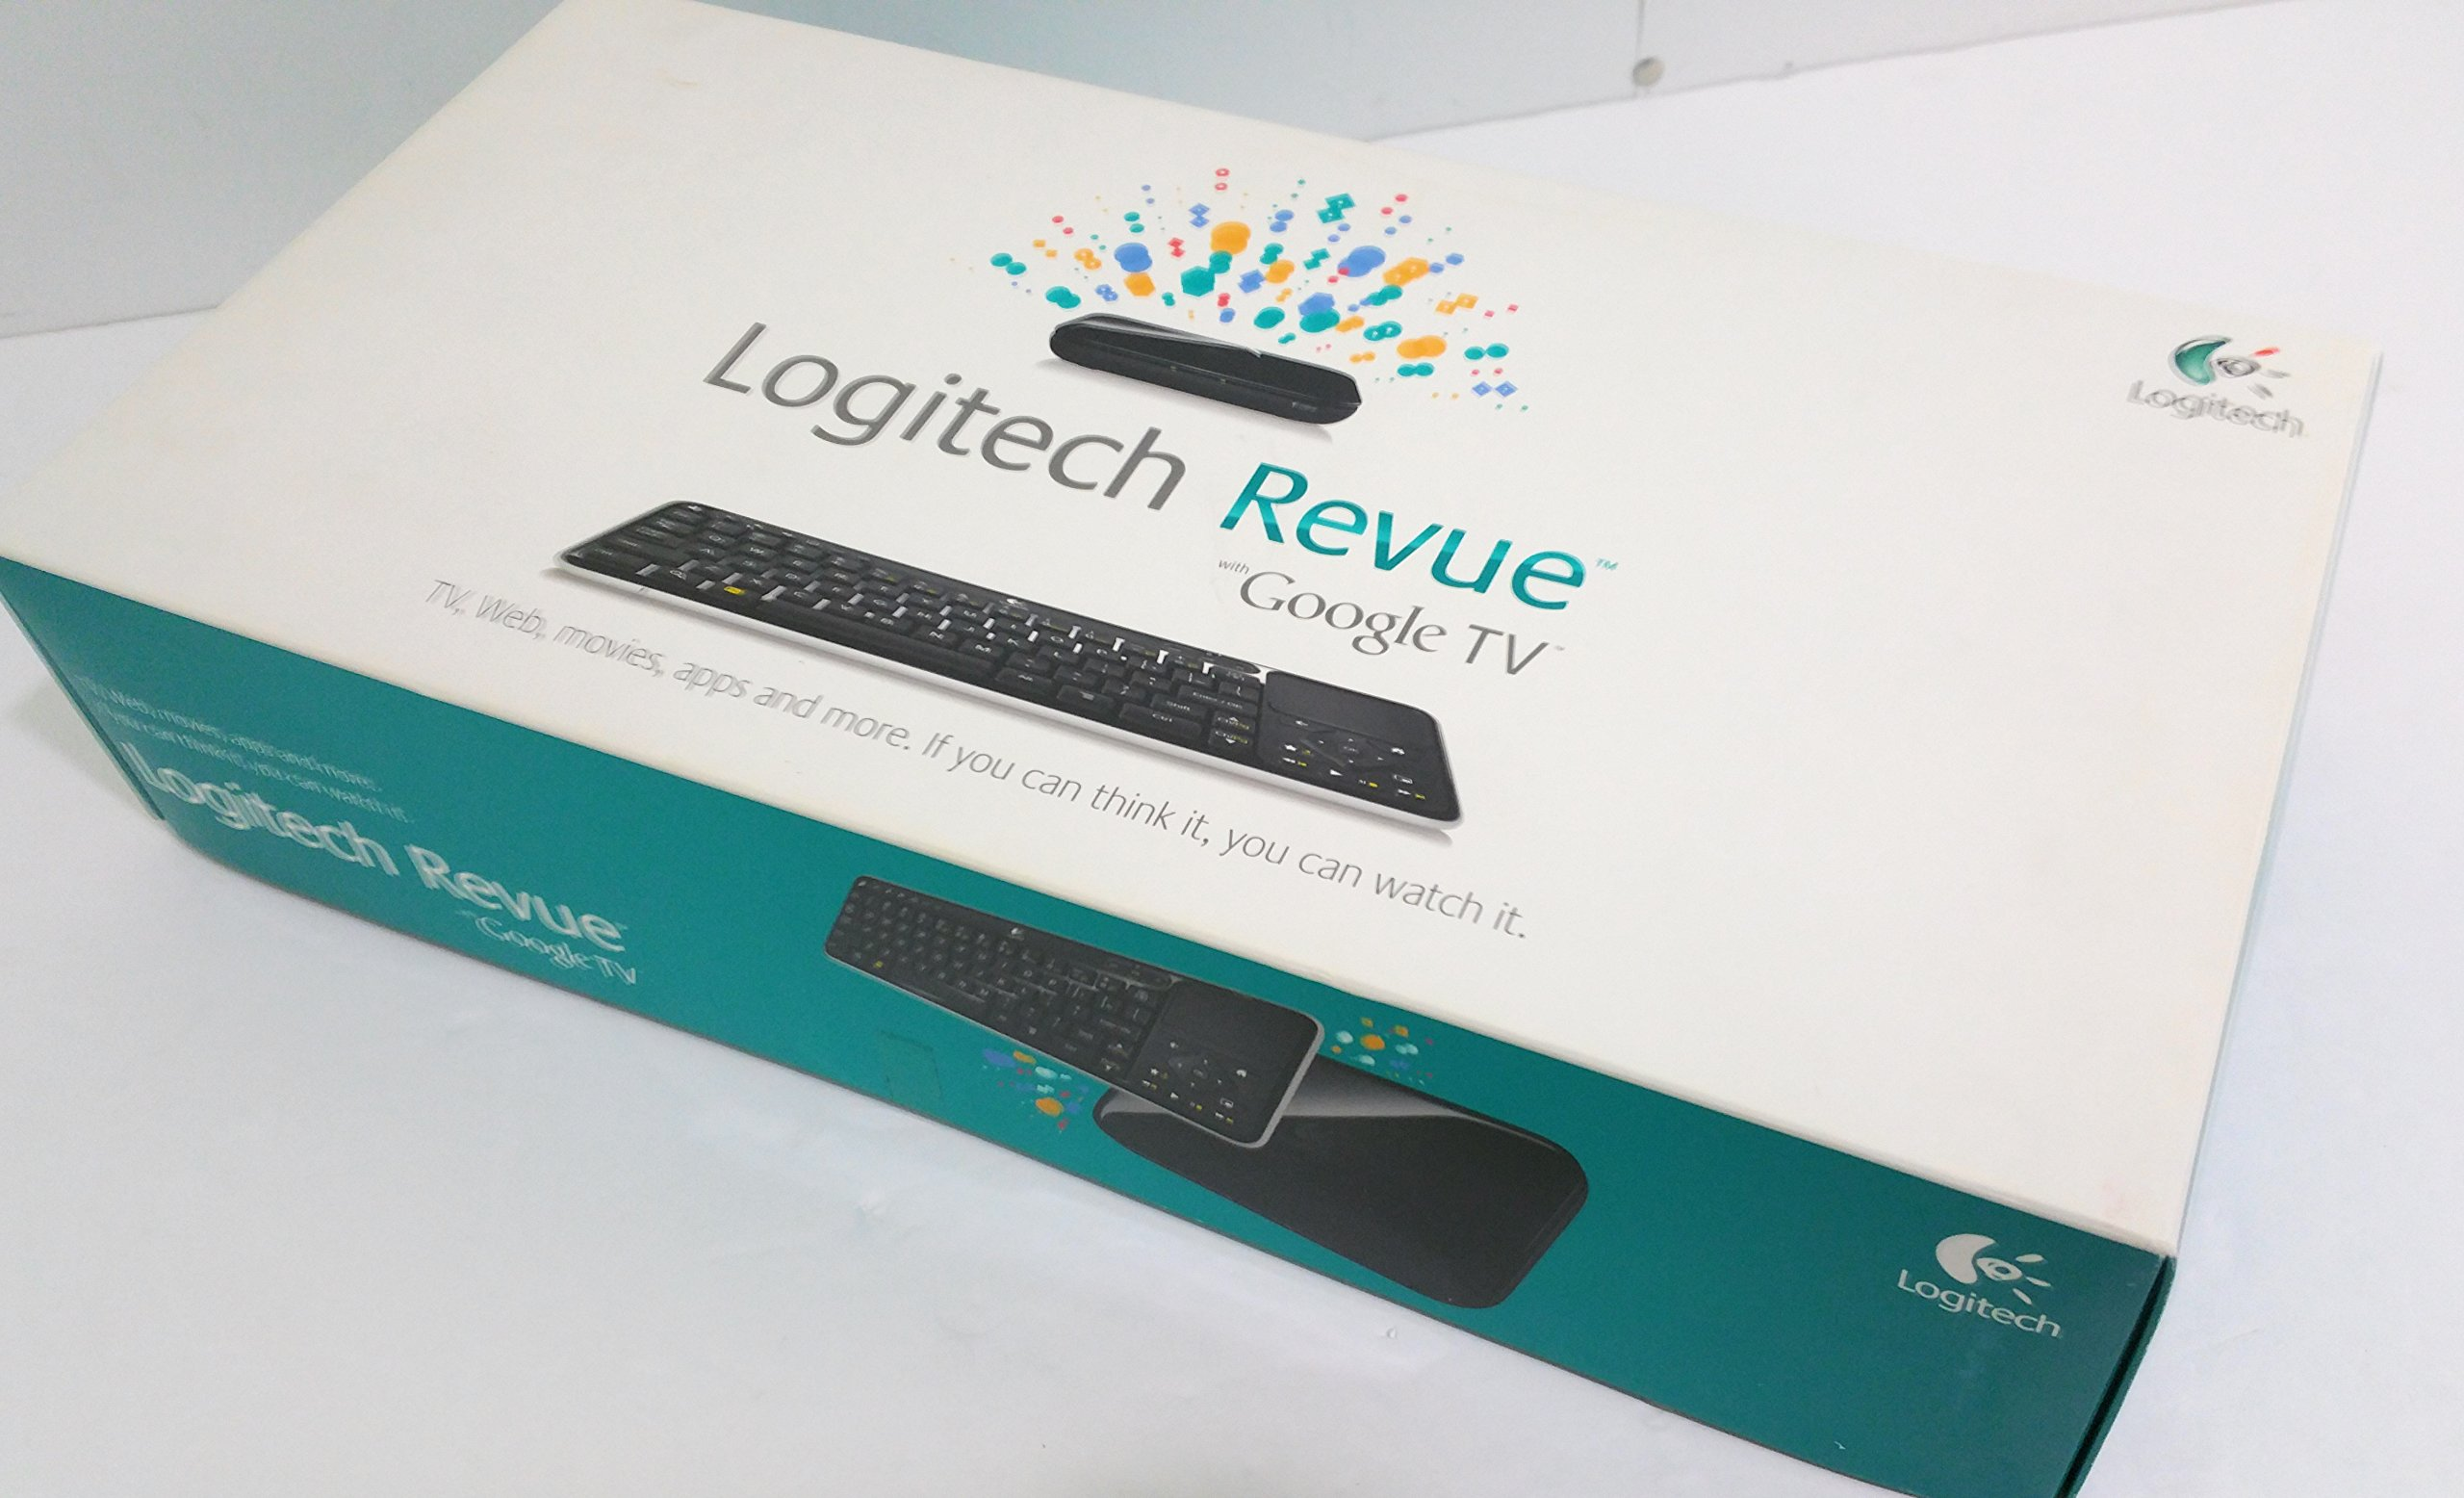 Logitech Revue Companion Box and Keyboard Controller